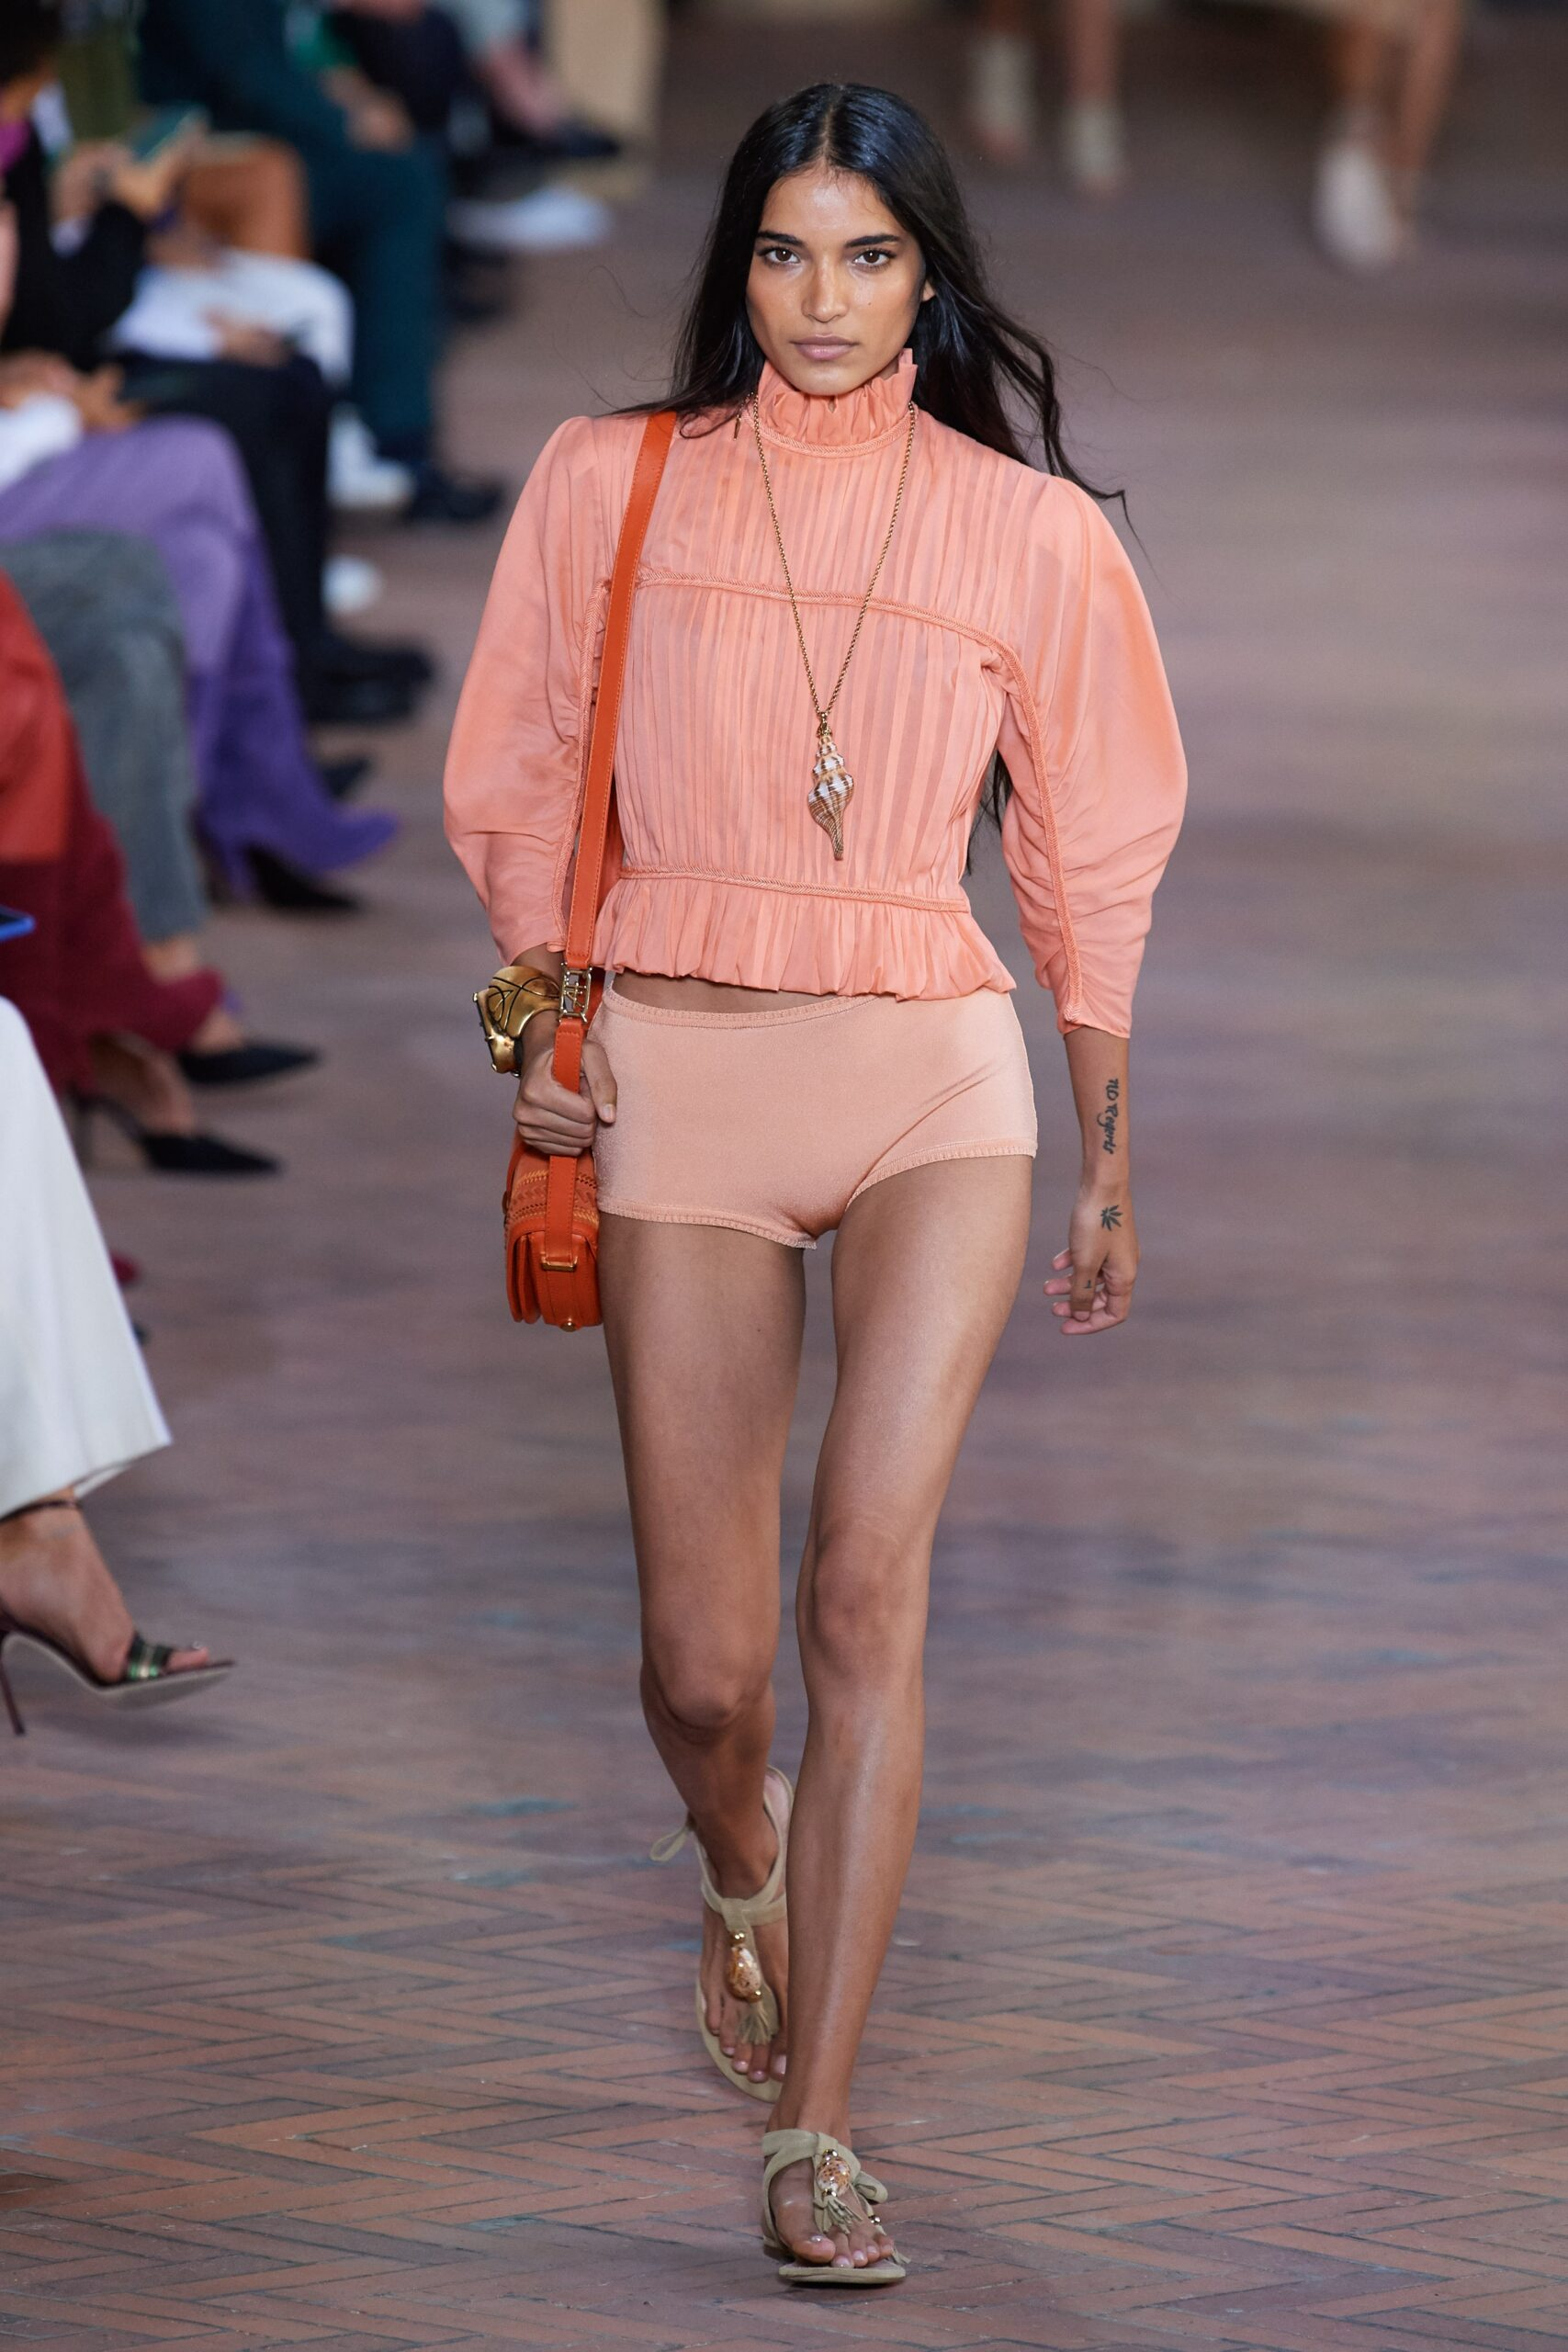 Rosa corallo - Alberta Ferretti Ready-to-Wear Spring 2021